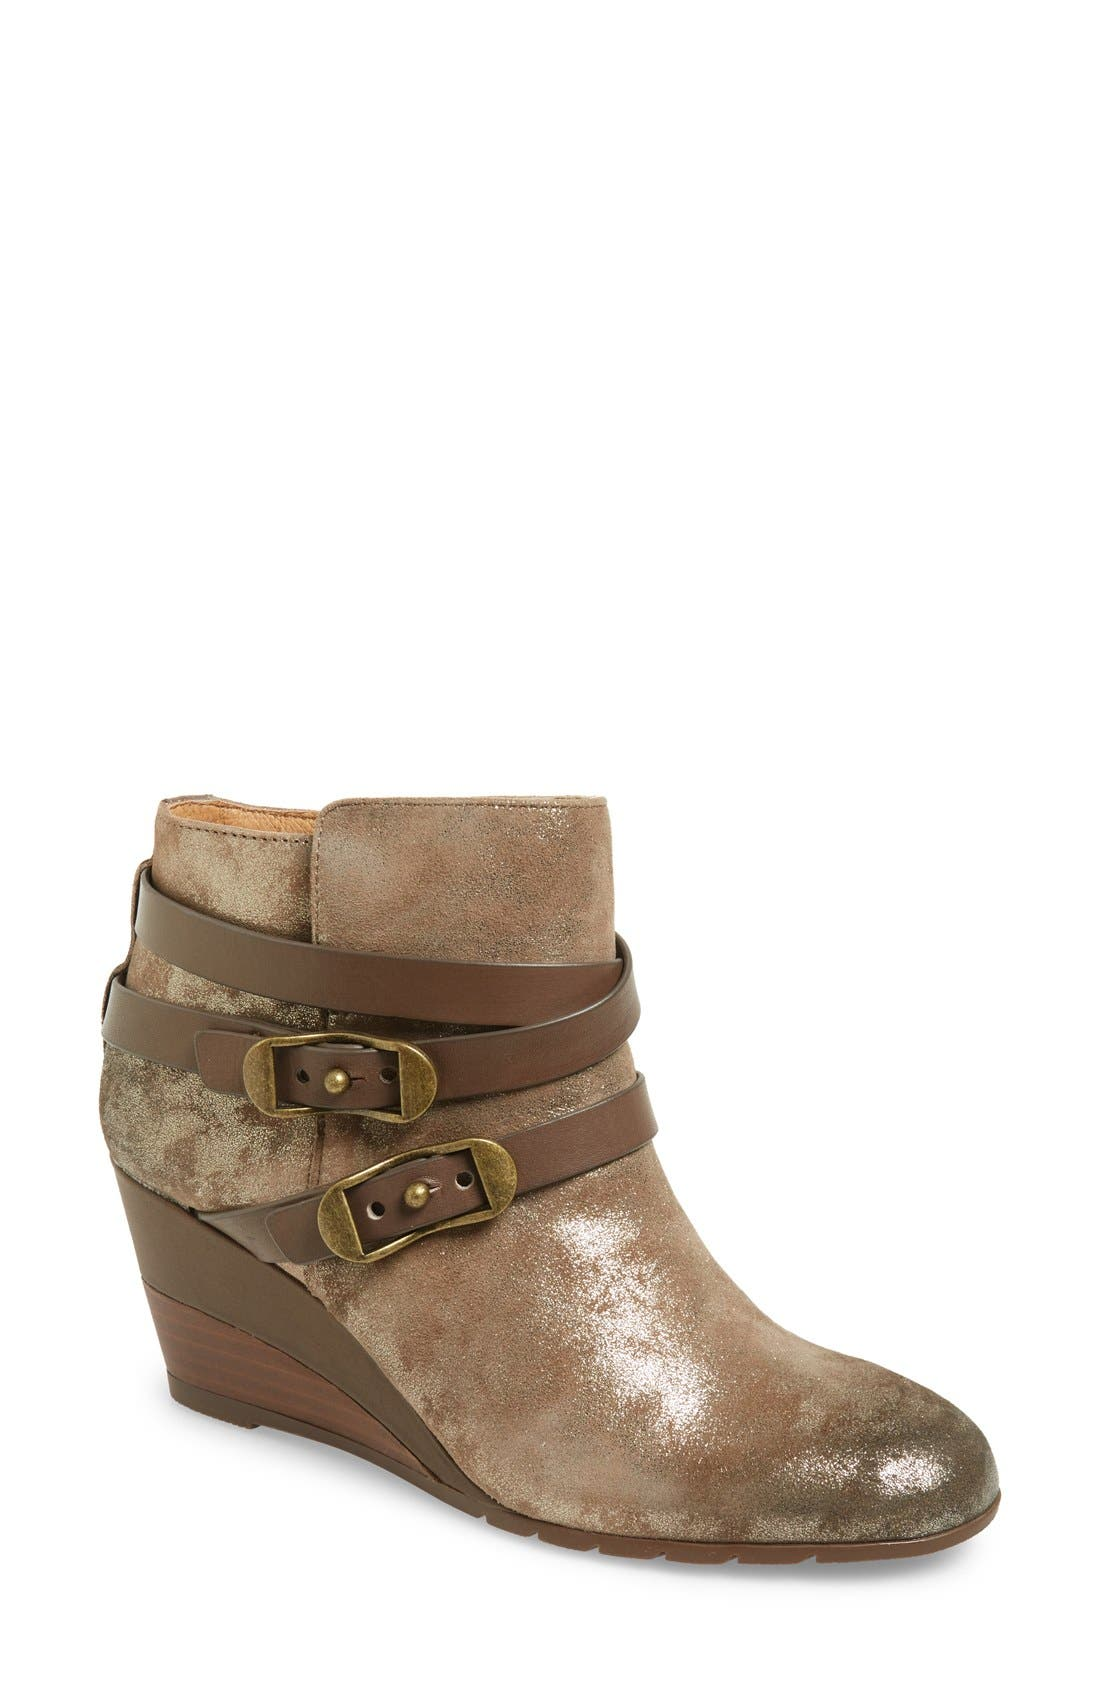 SÖFFT Oakes Wedge Bootie